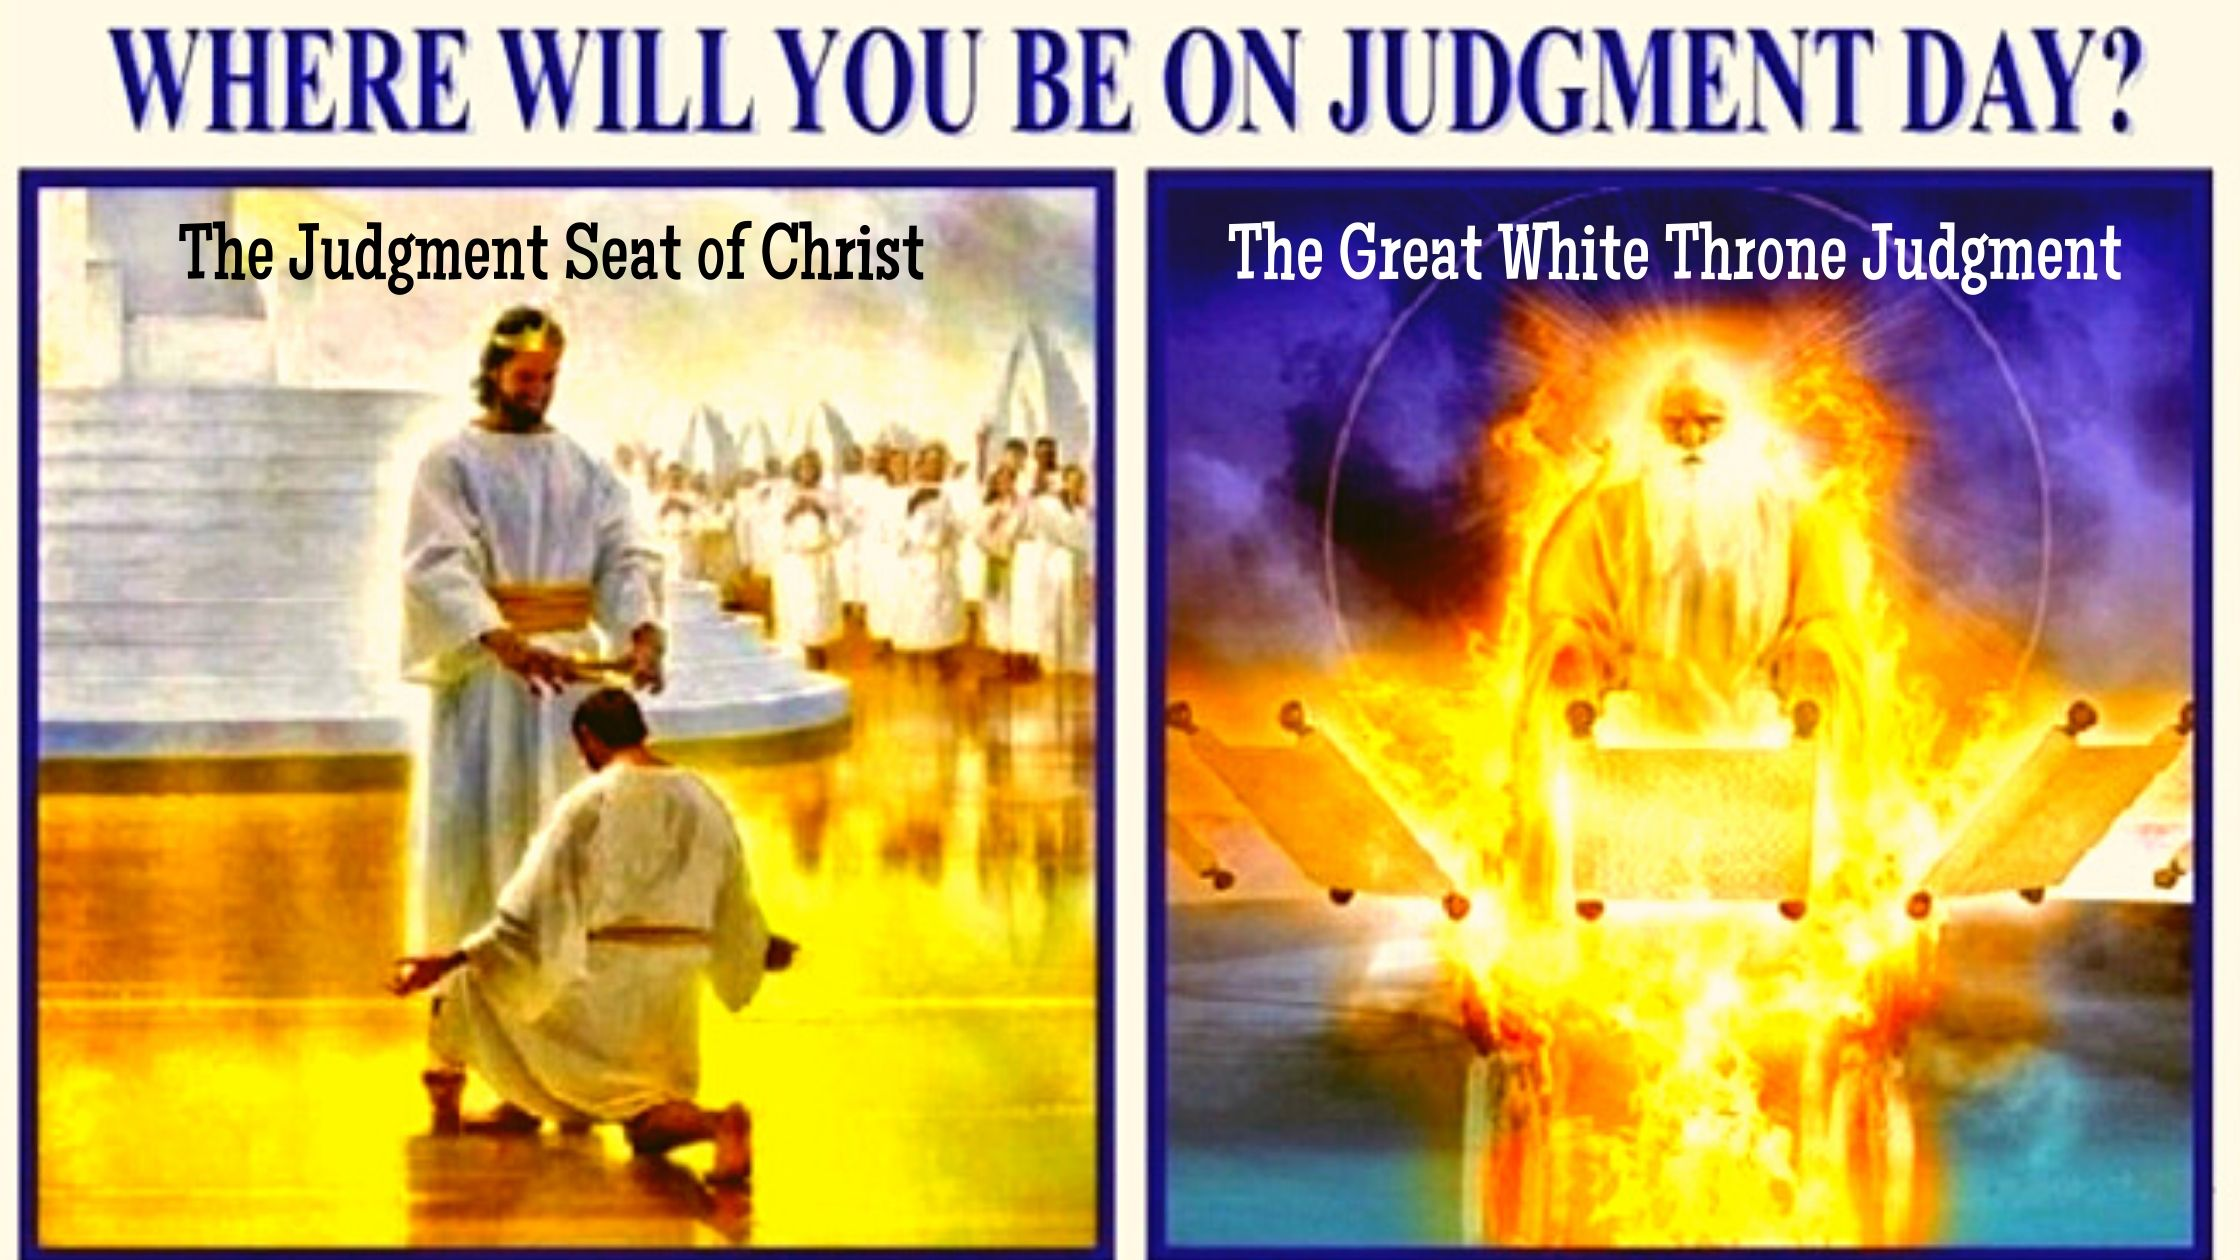 The 7 Future Judgments of God